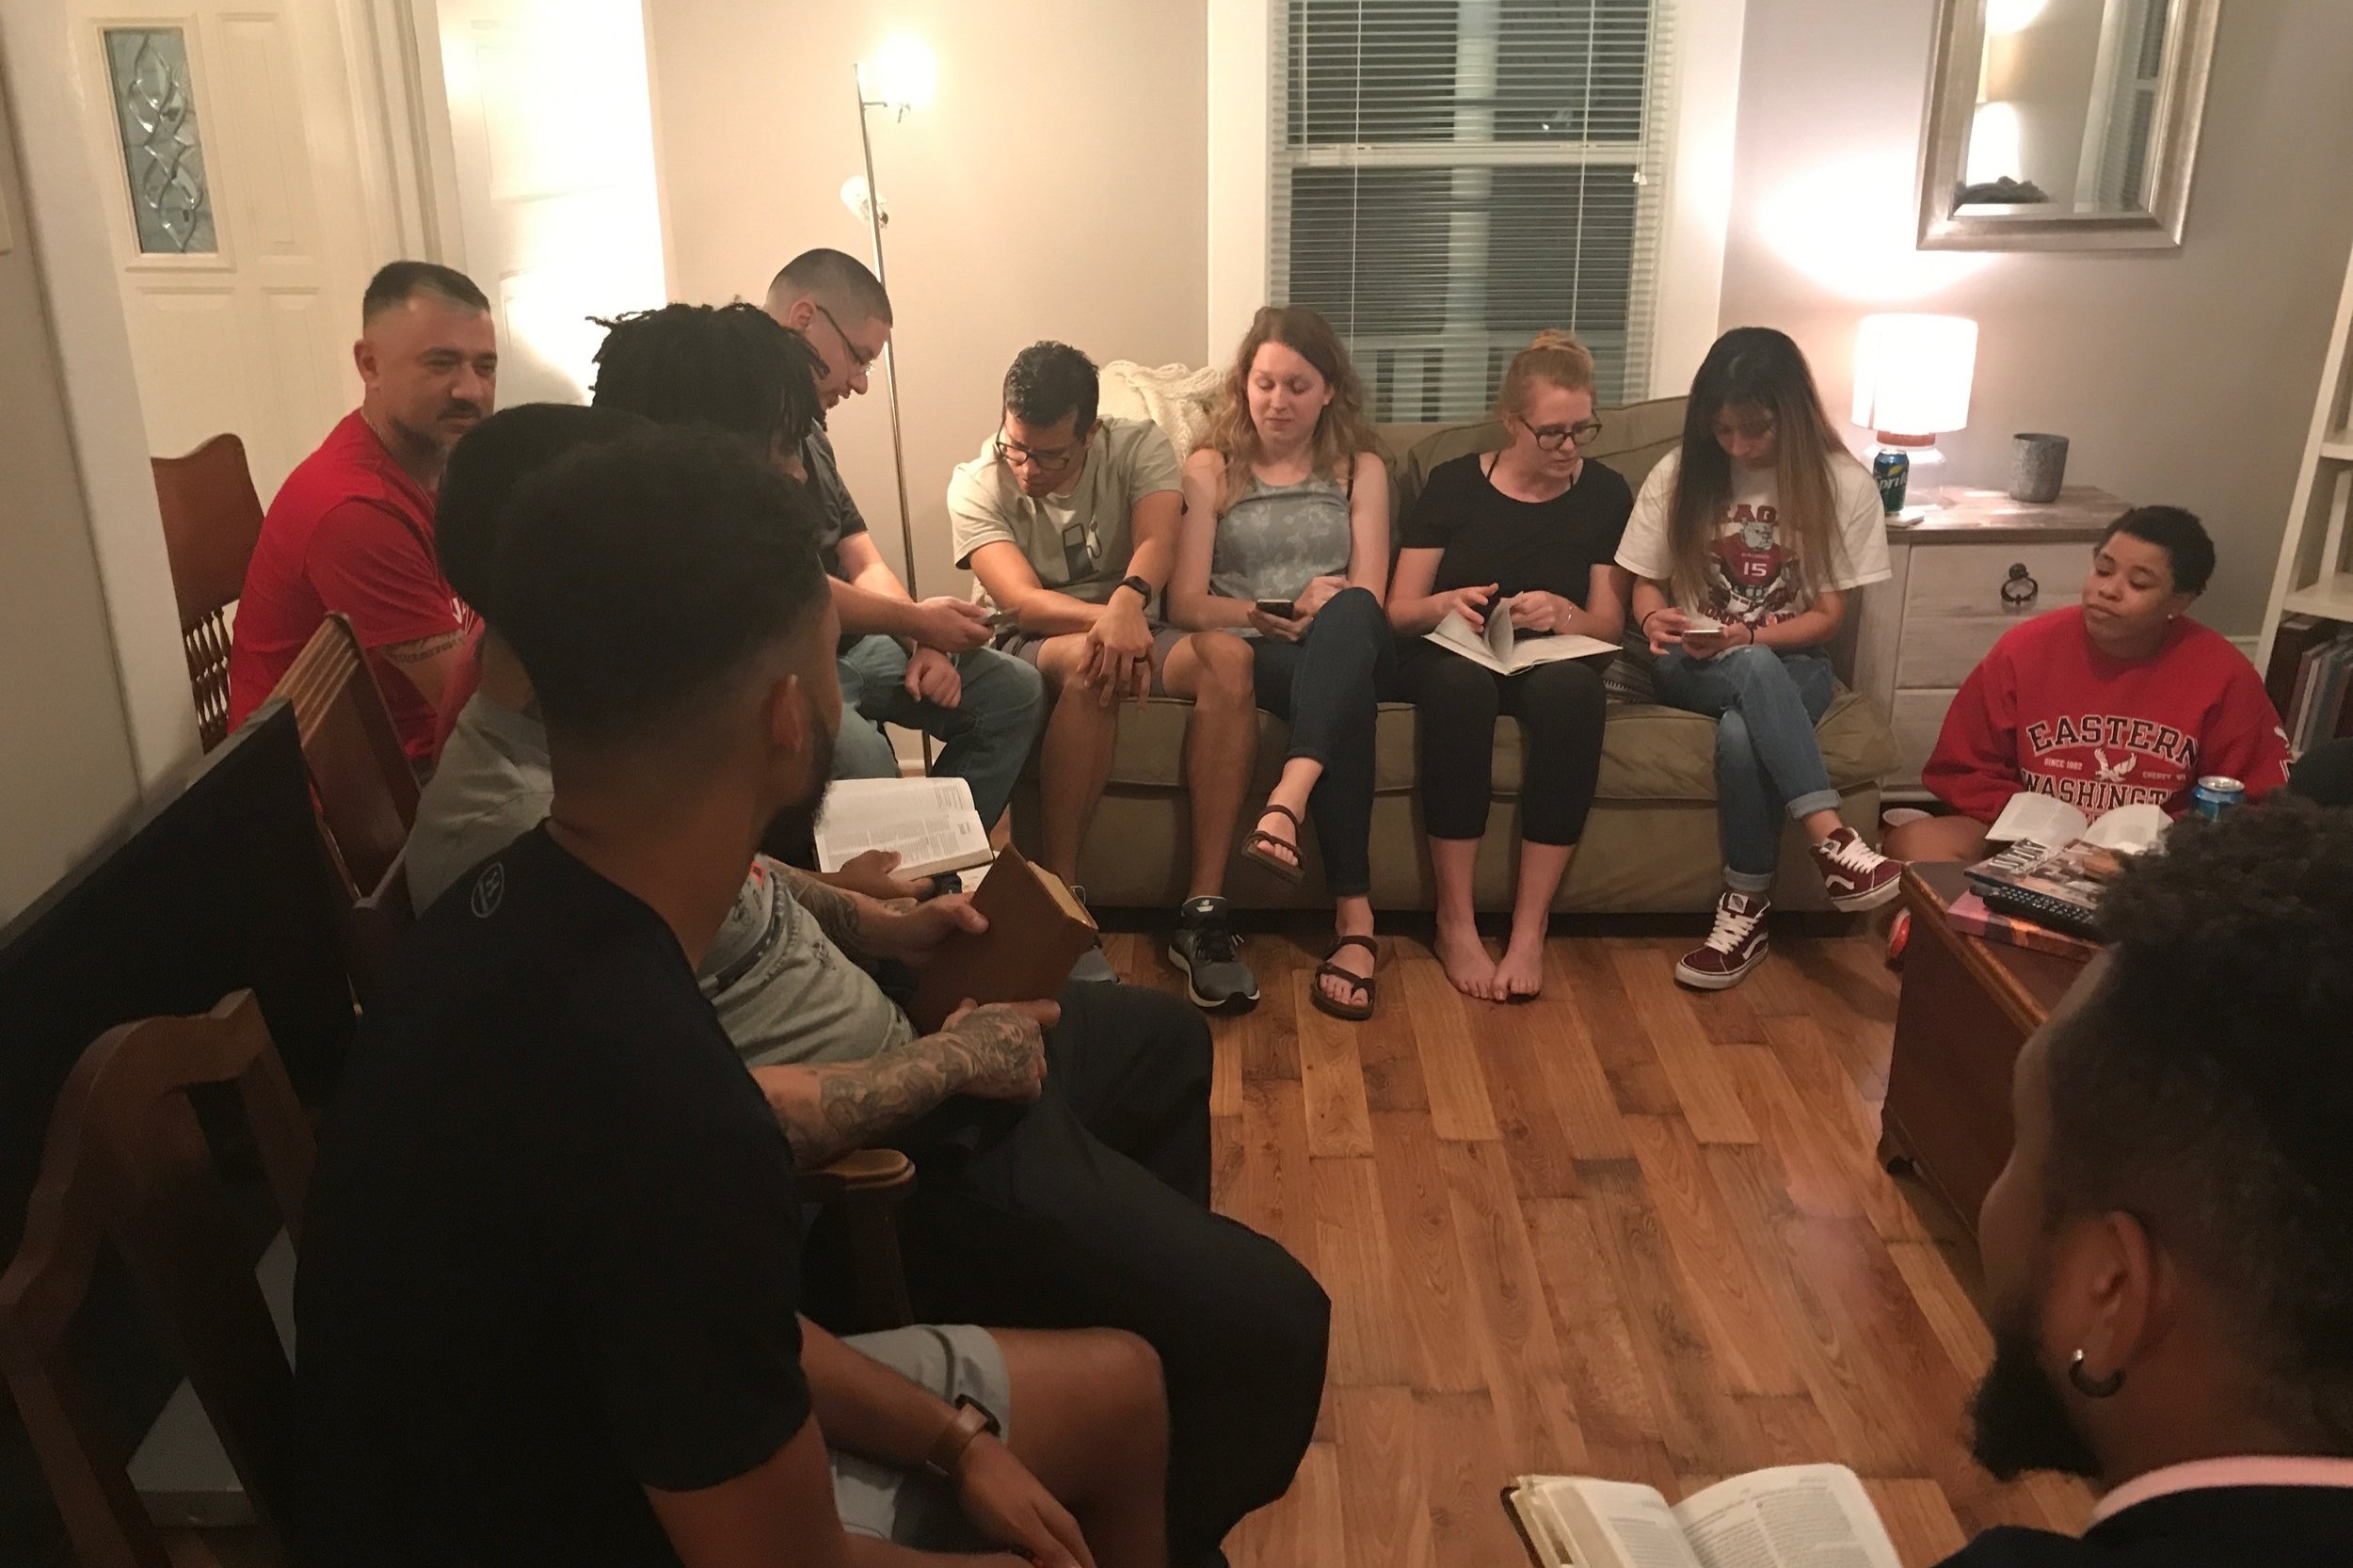 Get connected - Experiencing authentic biblical community